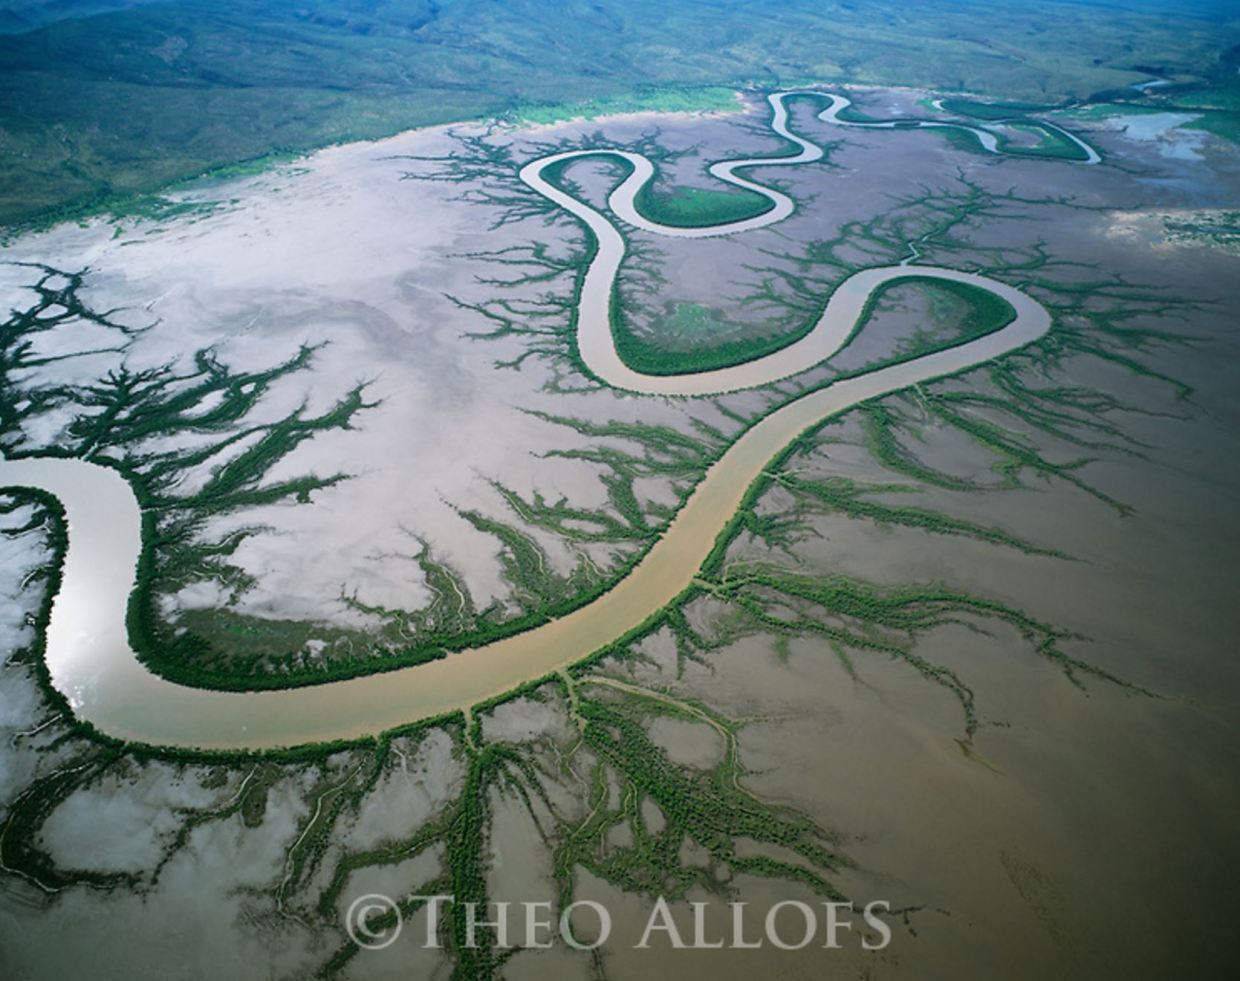 Image: Australia, Western Australia, Kimberley region, aerial of meandering river in mudflats in rainy season, mangrove trees lining shores of main river and tributarie